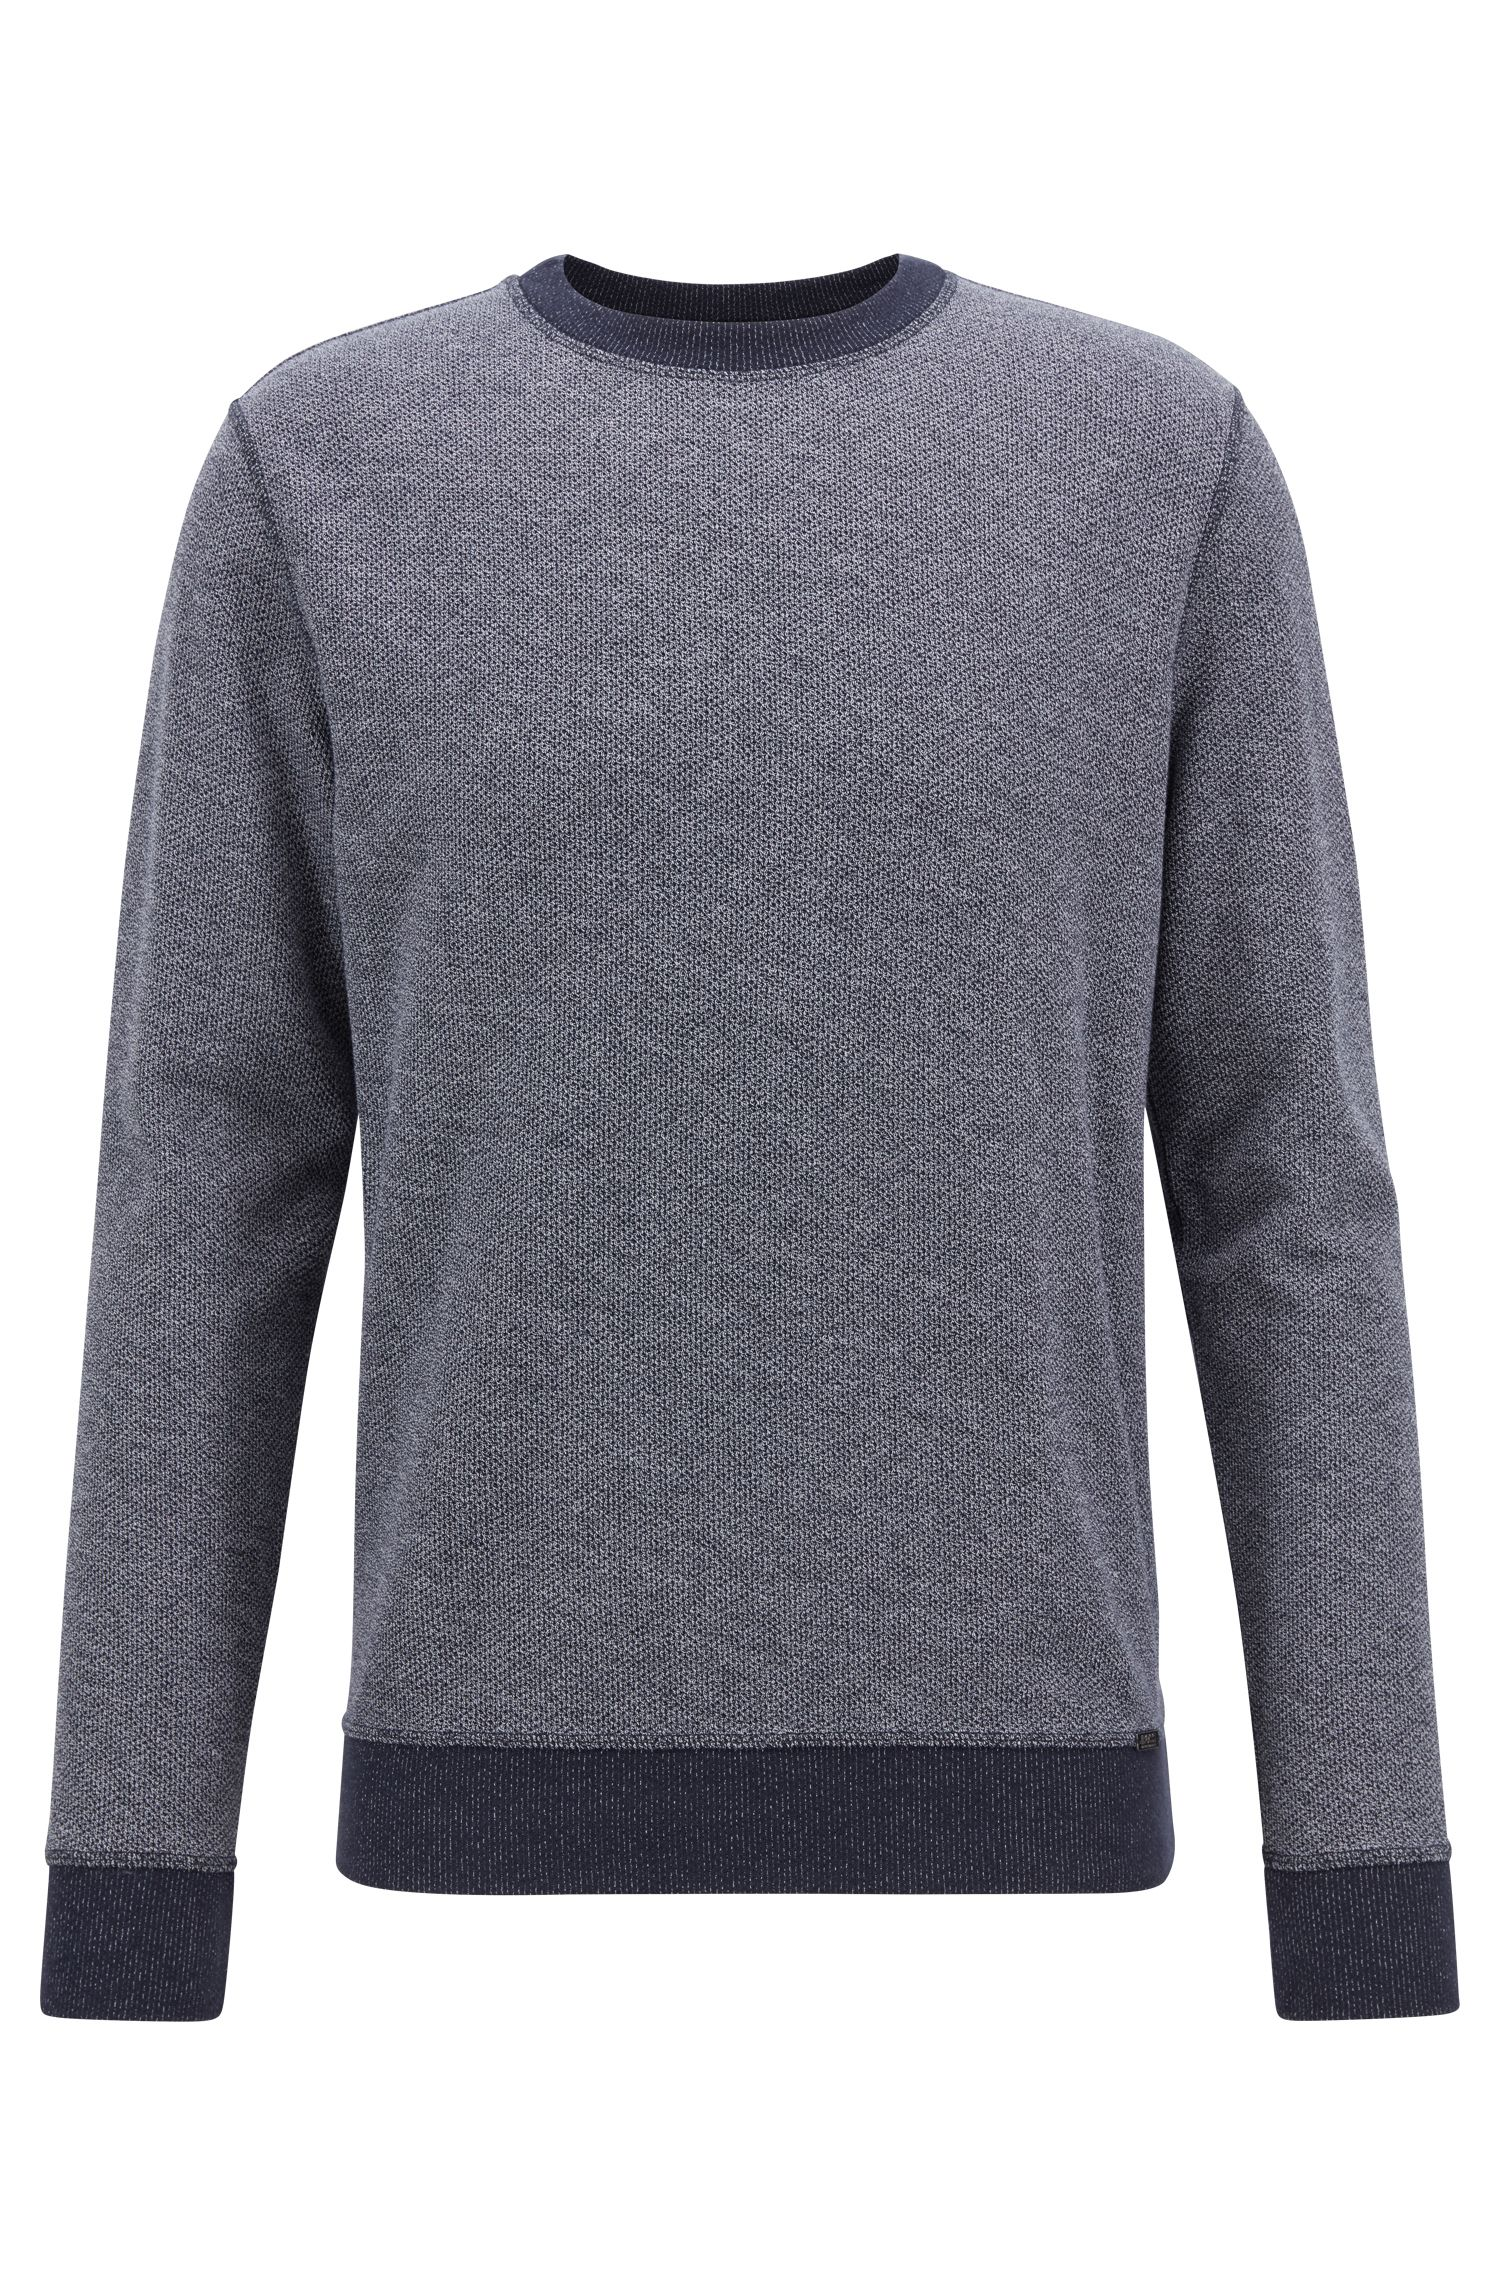 Reversible sweatshirt in mesh-structured cotton with contrast detailing, Dark Blue